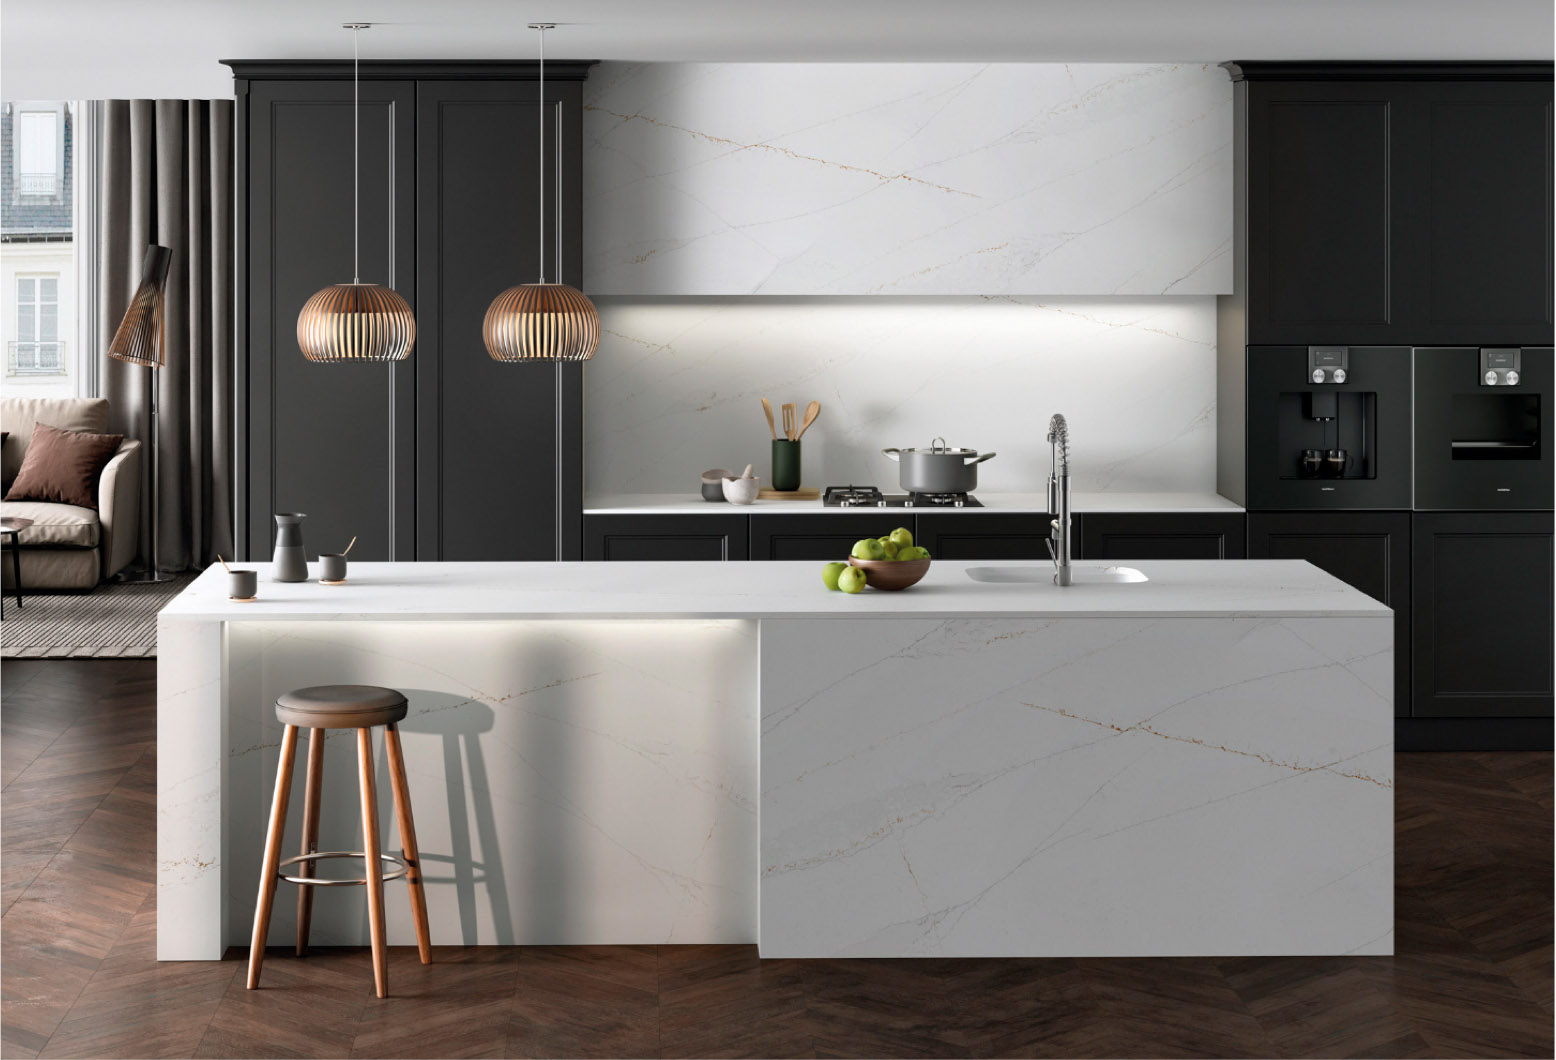 Image of Ambiente Glow in Ethereal Glow - Cosentino